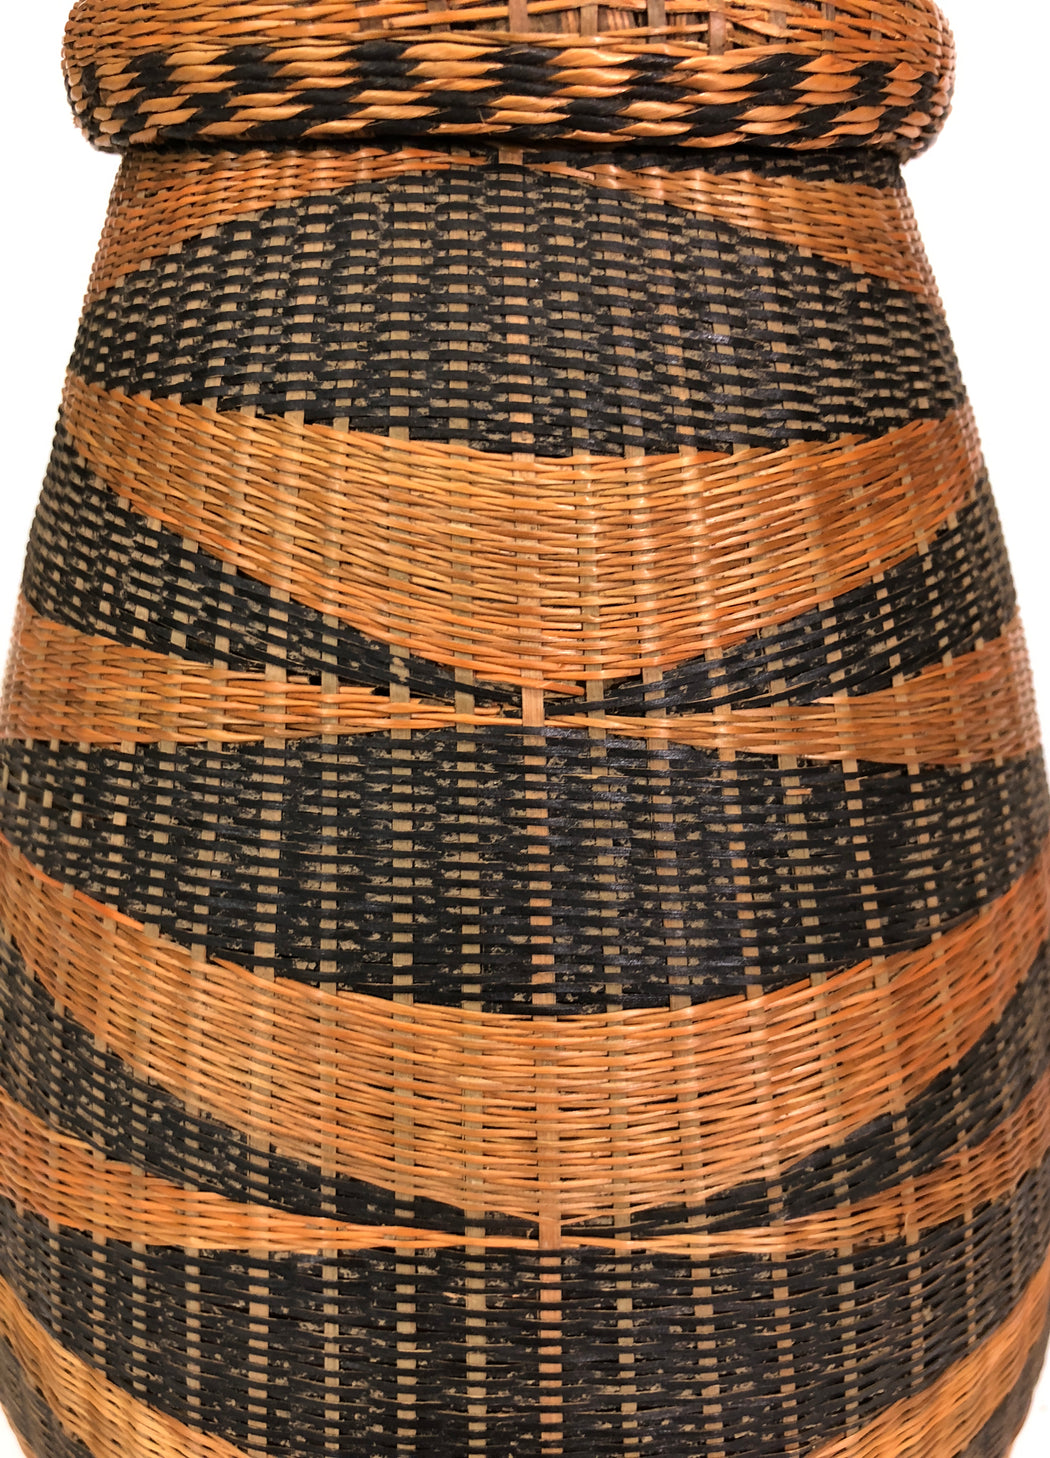 "Vintage Tutsi Basket from Rwanda - Medium - 11"" x 6"""